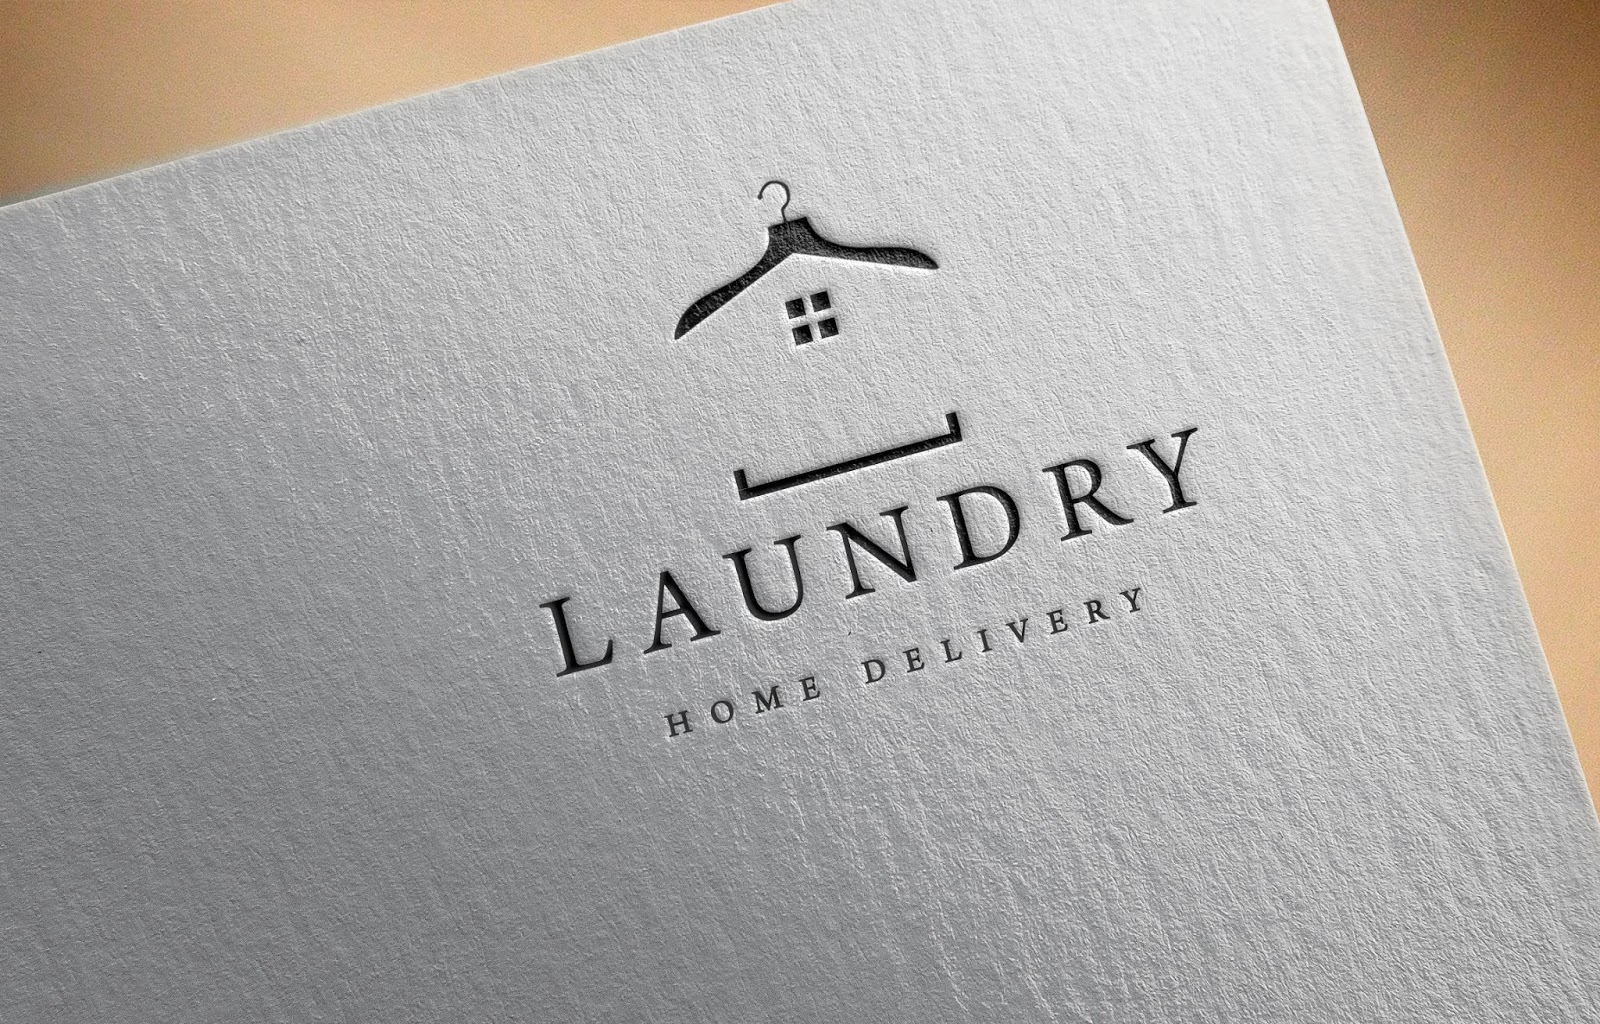 Laundry Home Delivery Logo Idea